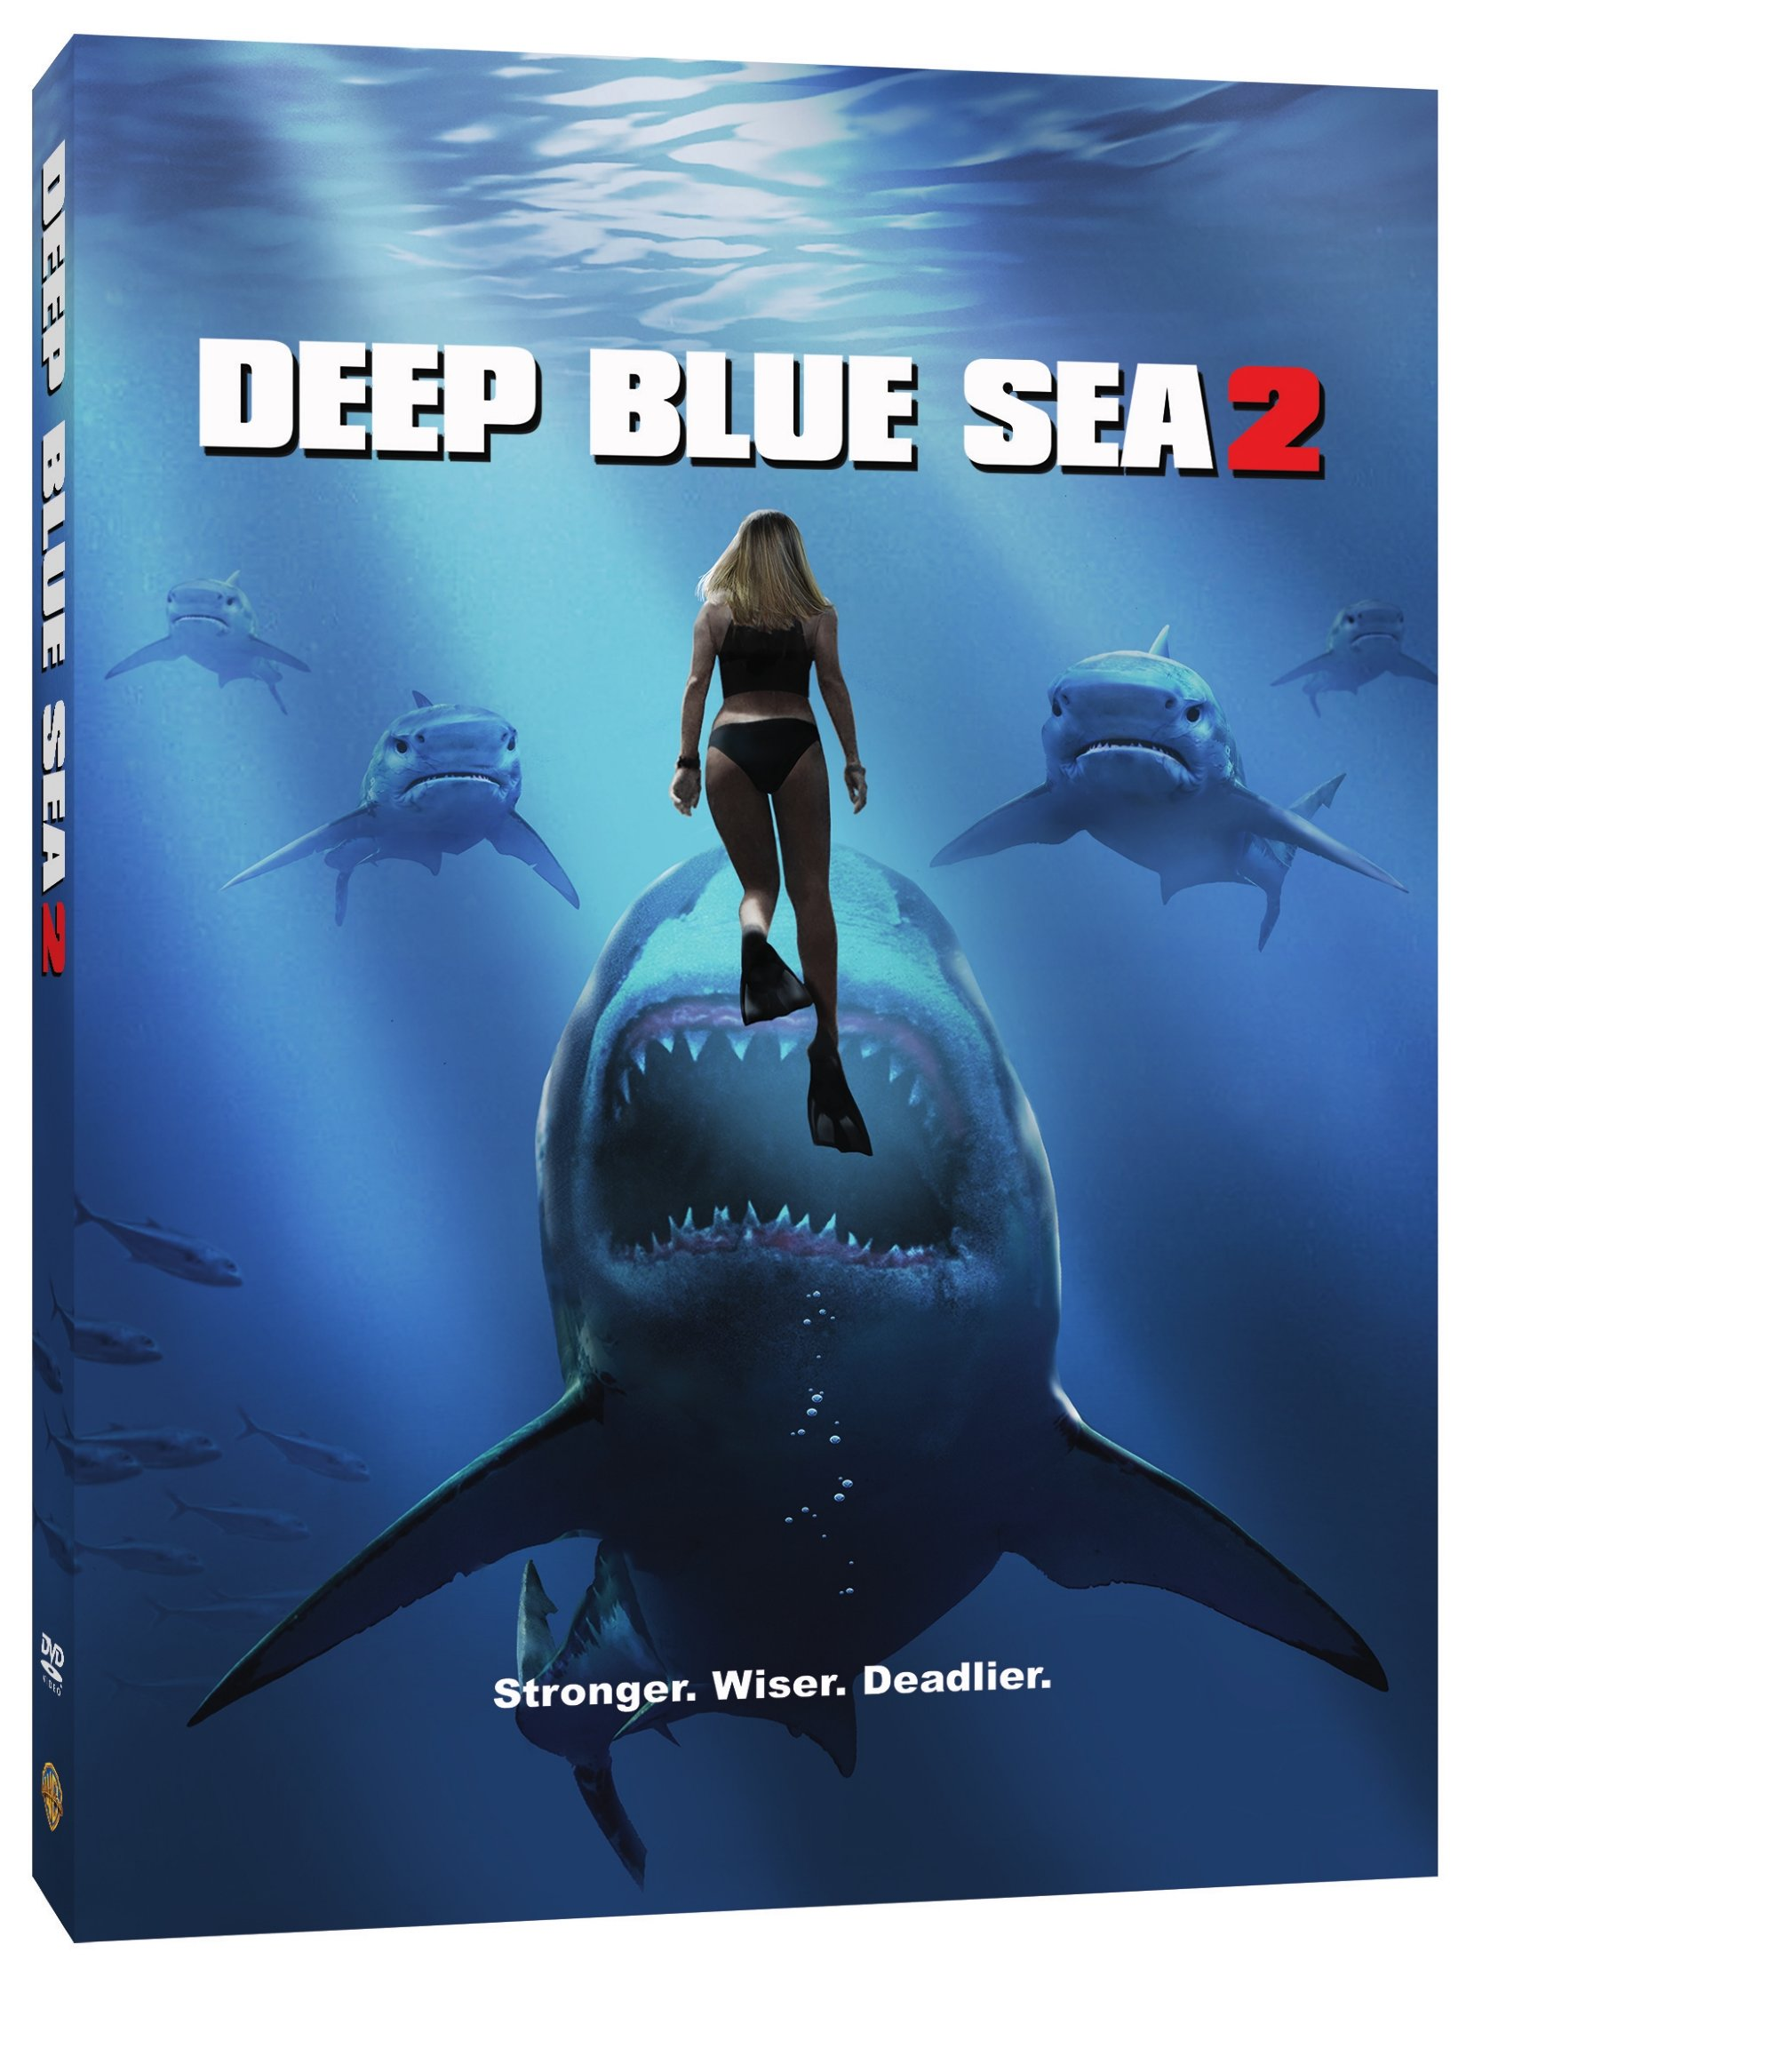 Avatar 2 Trailer The Lost Ocean: Deep Blue Sea 2 .. What Could Go Wrong